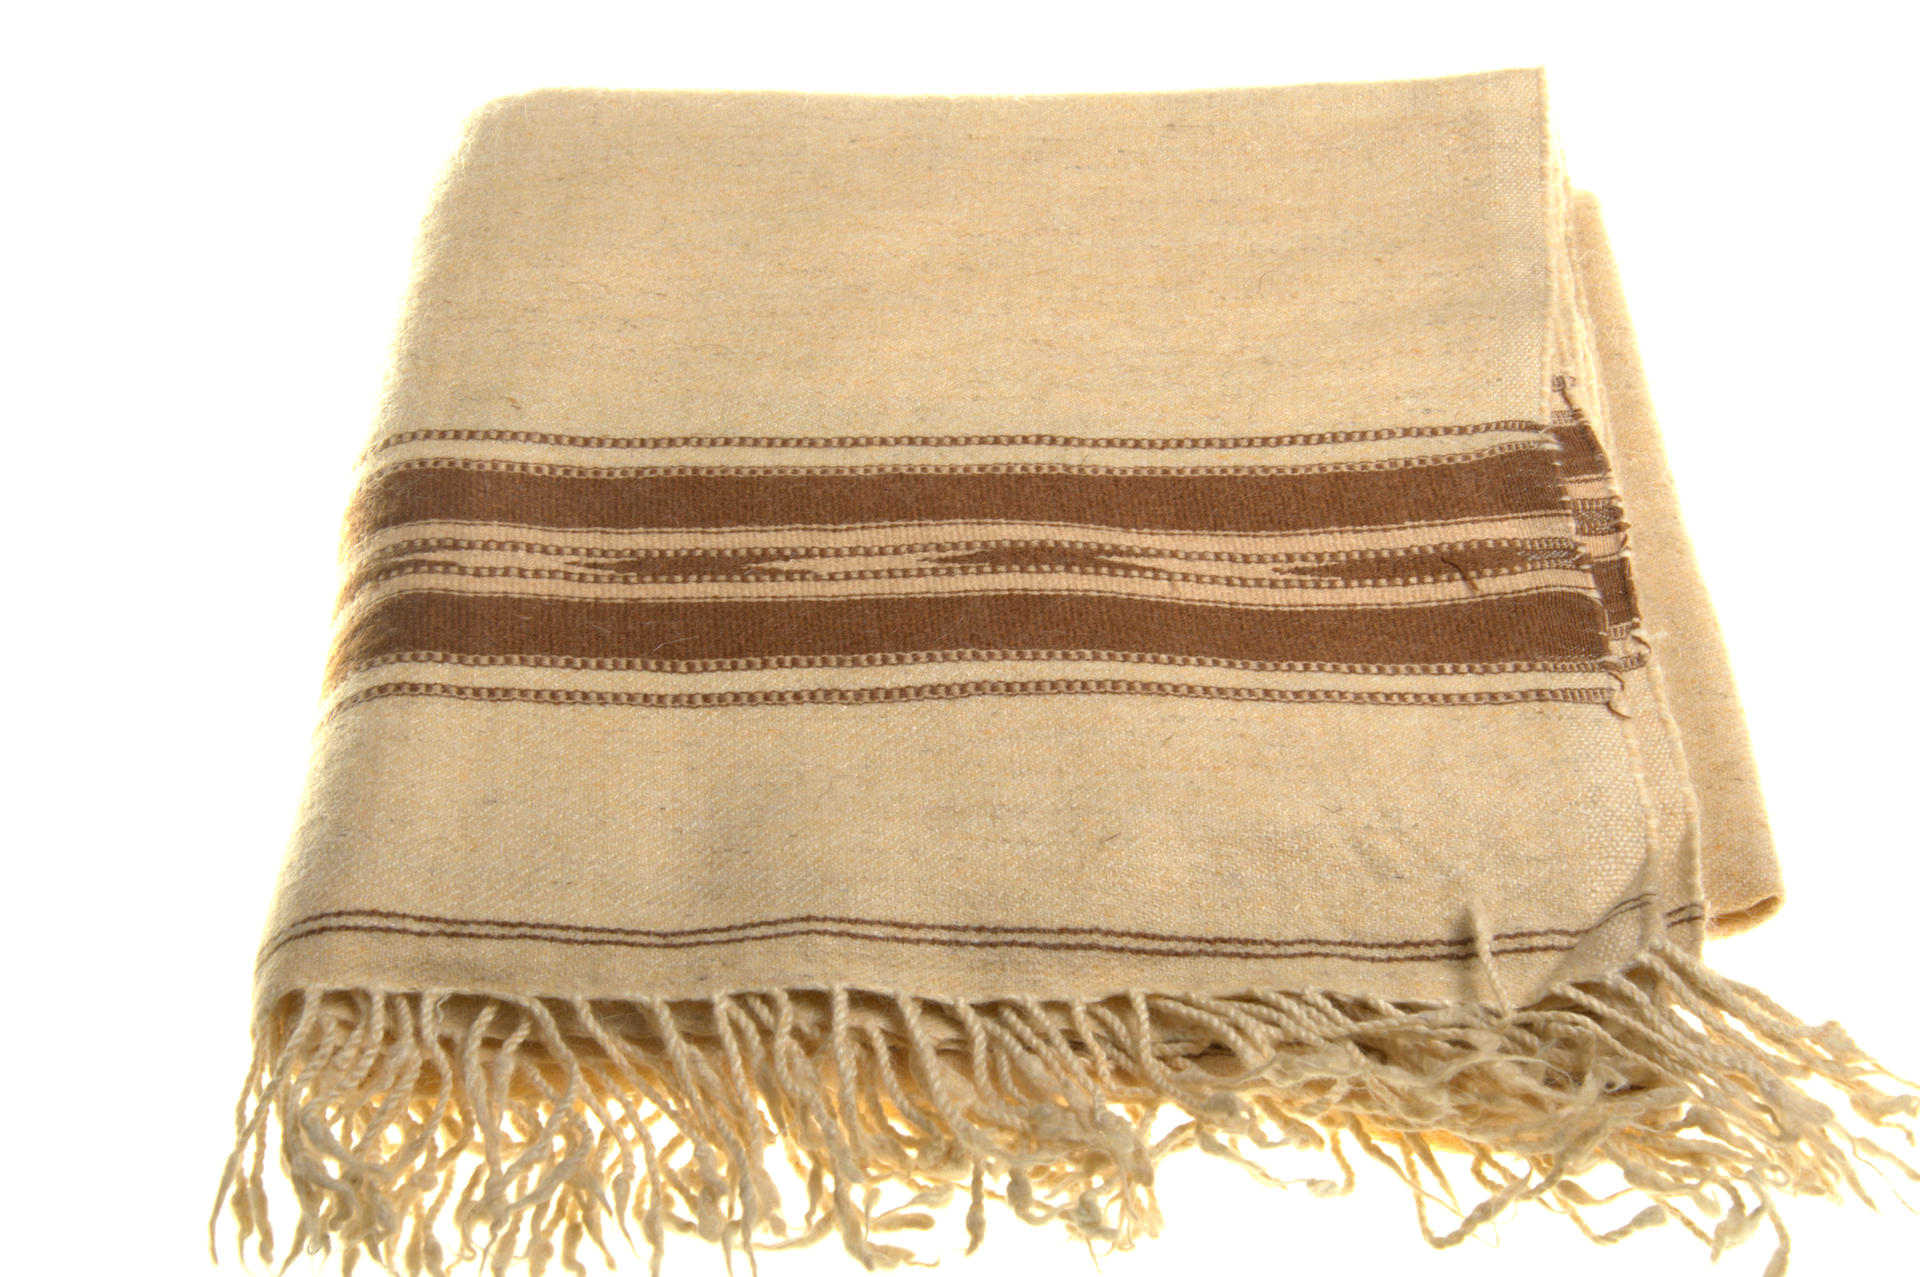 Beige colour handwoven woolen plaid from Swat